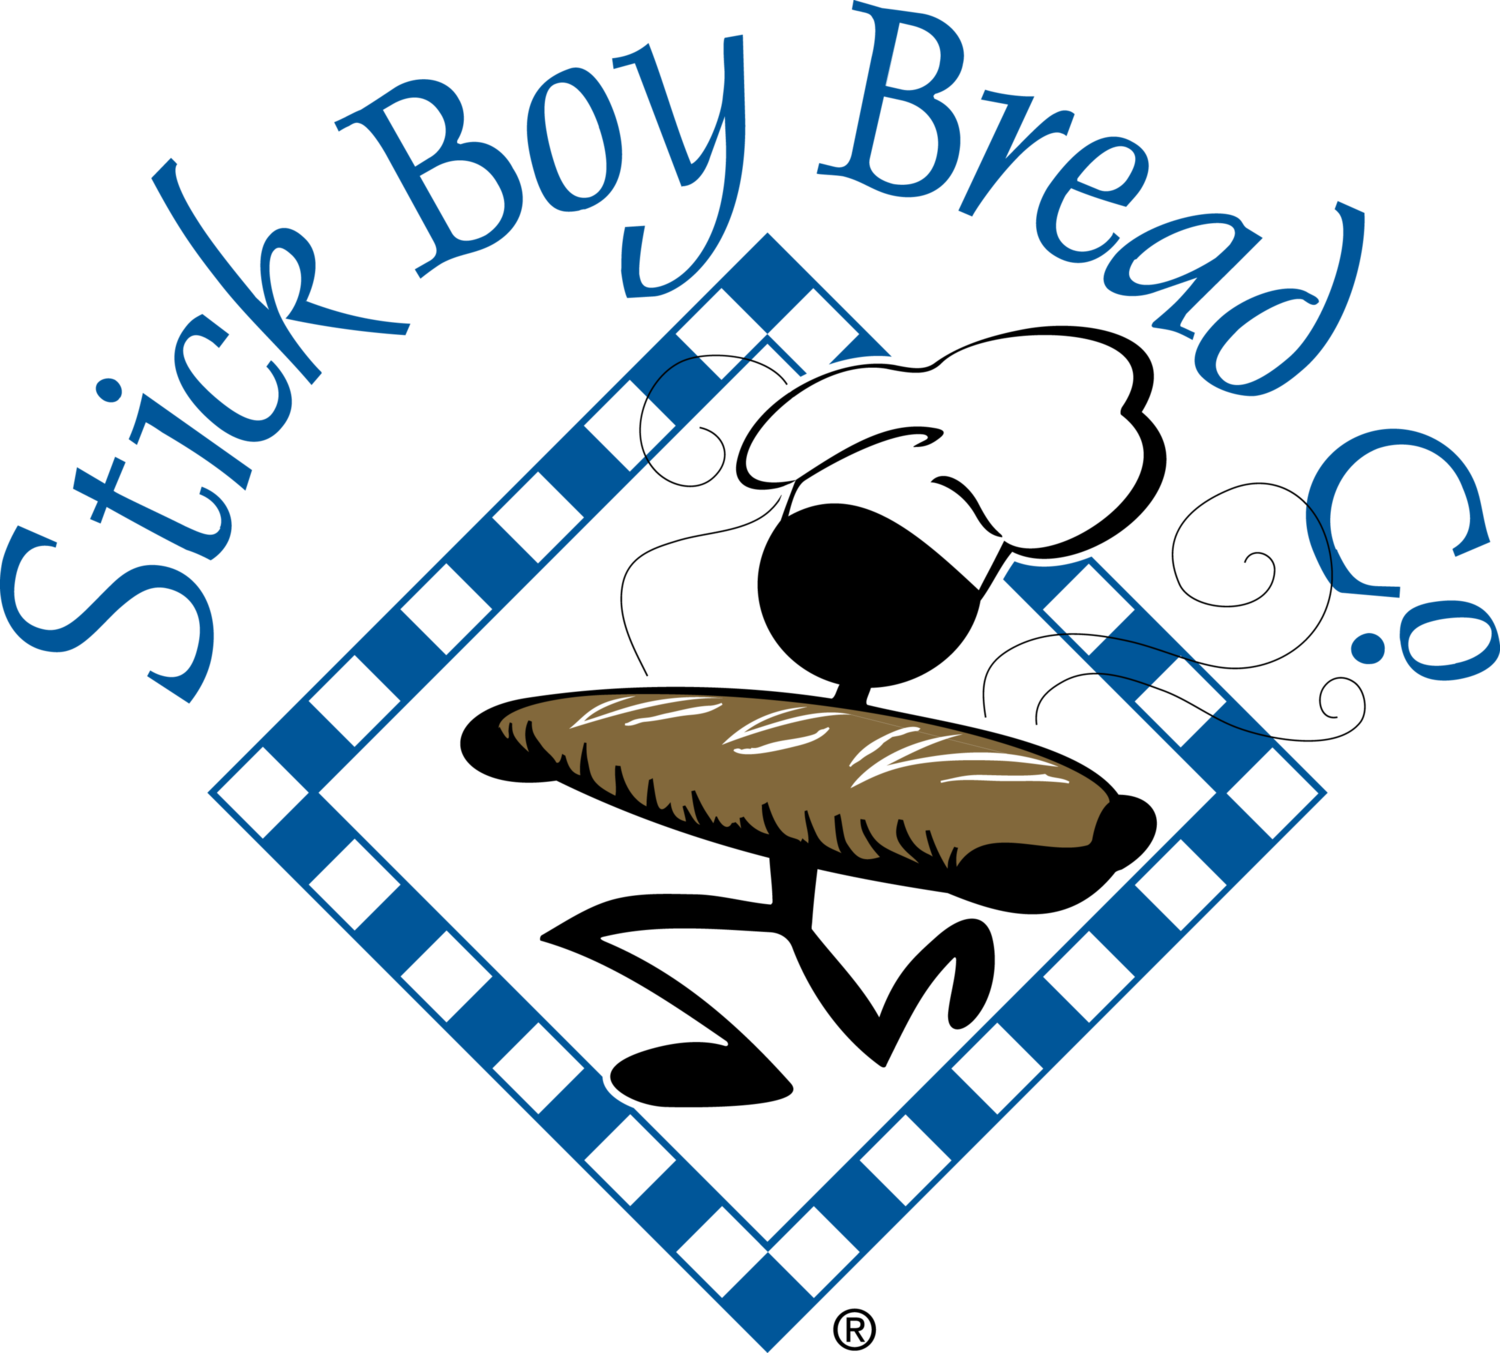 Stick Boy Bread Company